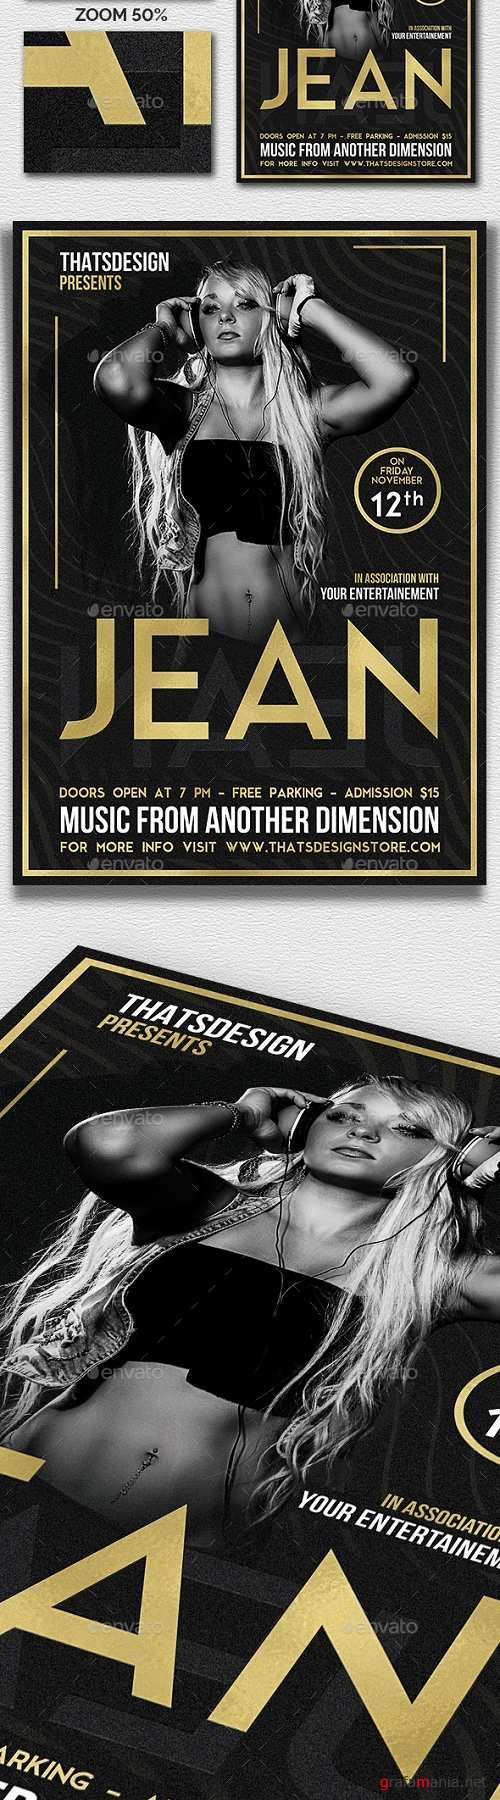 DJ Session Flyer Template V4 20416889 - 2021424